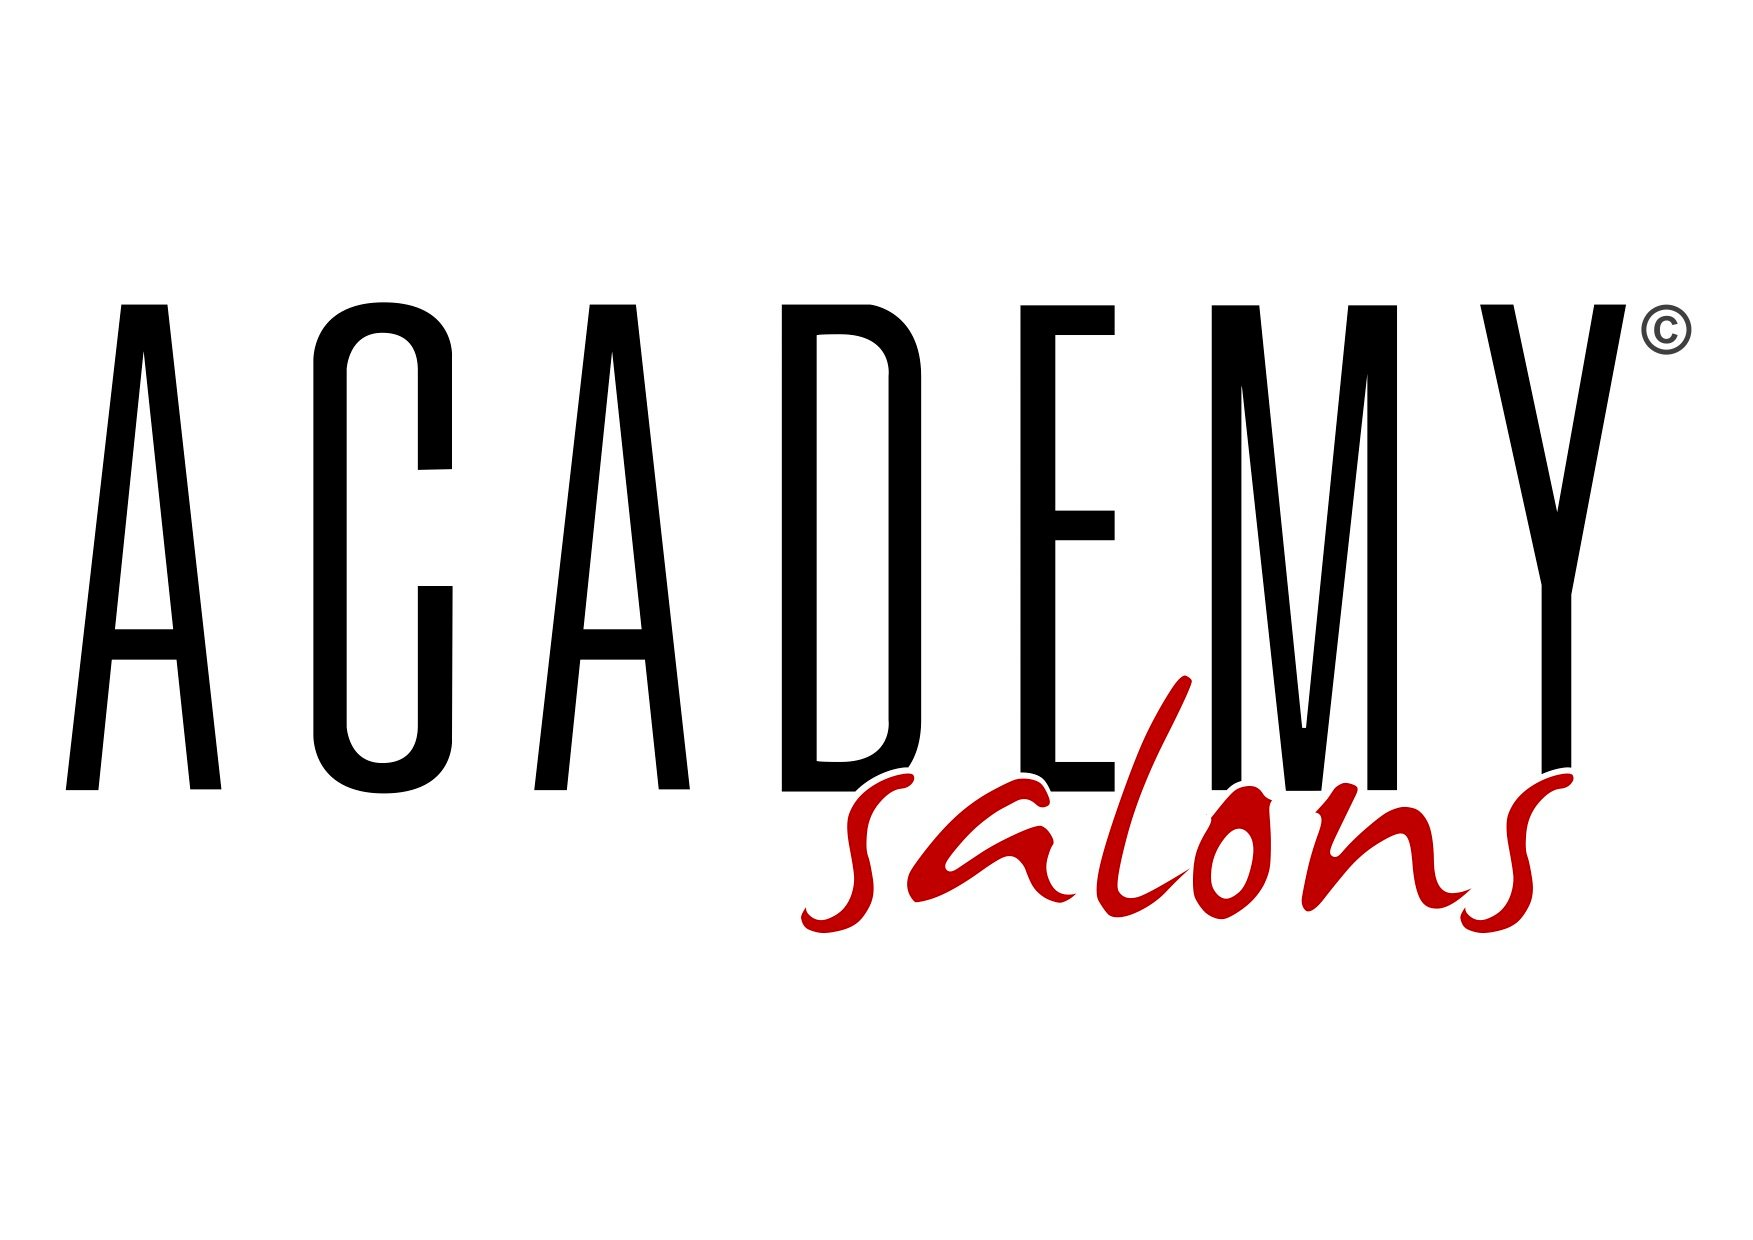 Academy salons salon reviews salonspy uk for Academy for salon professionals reviews